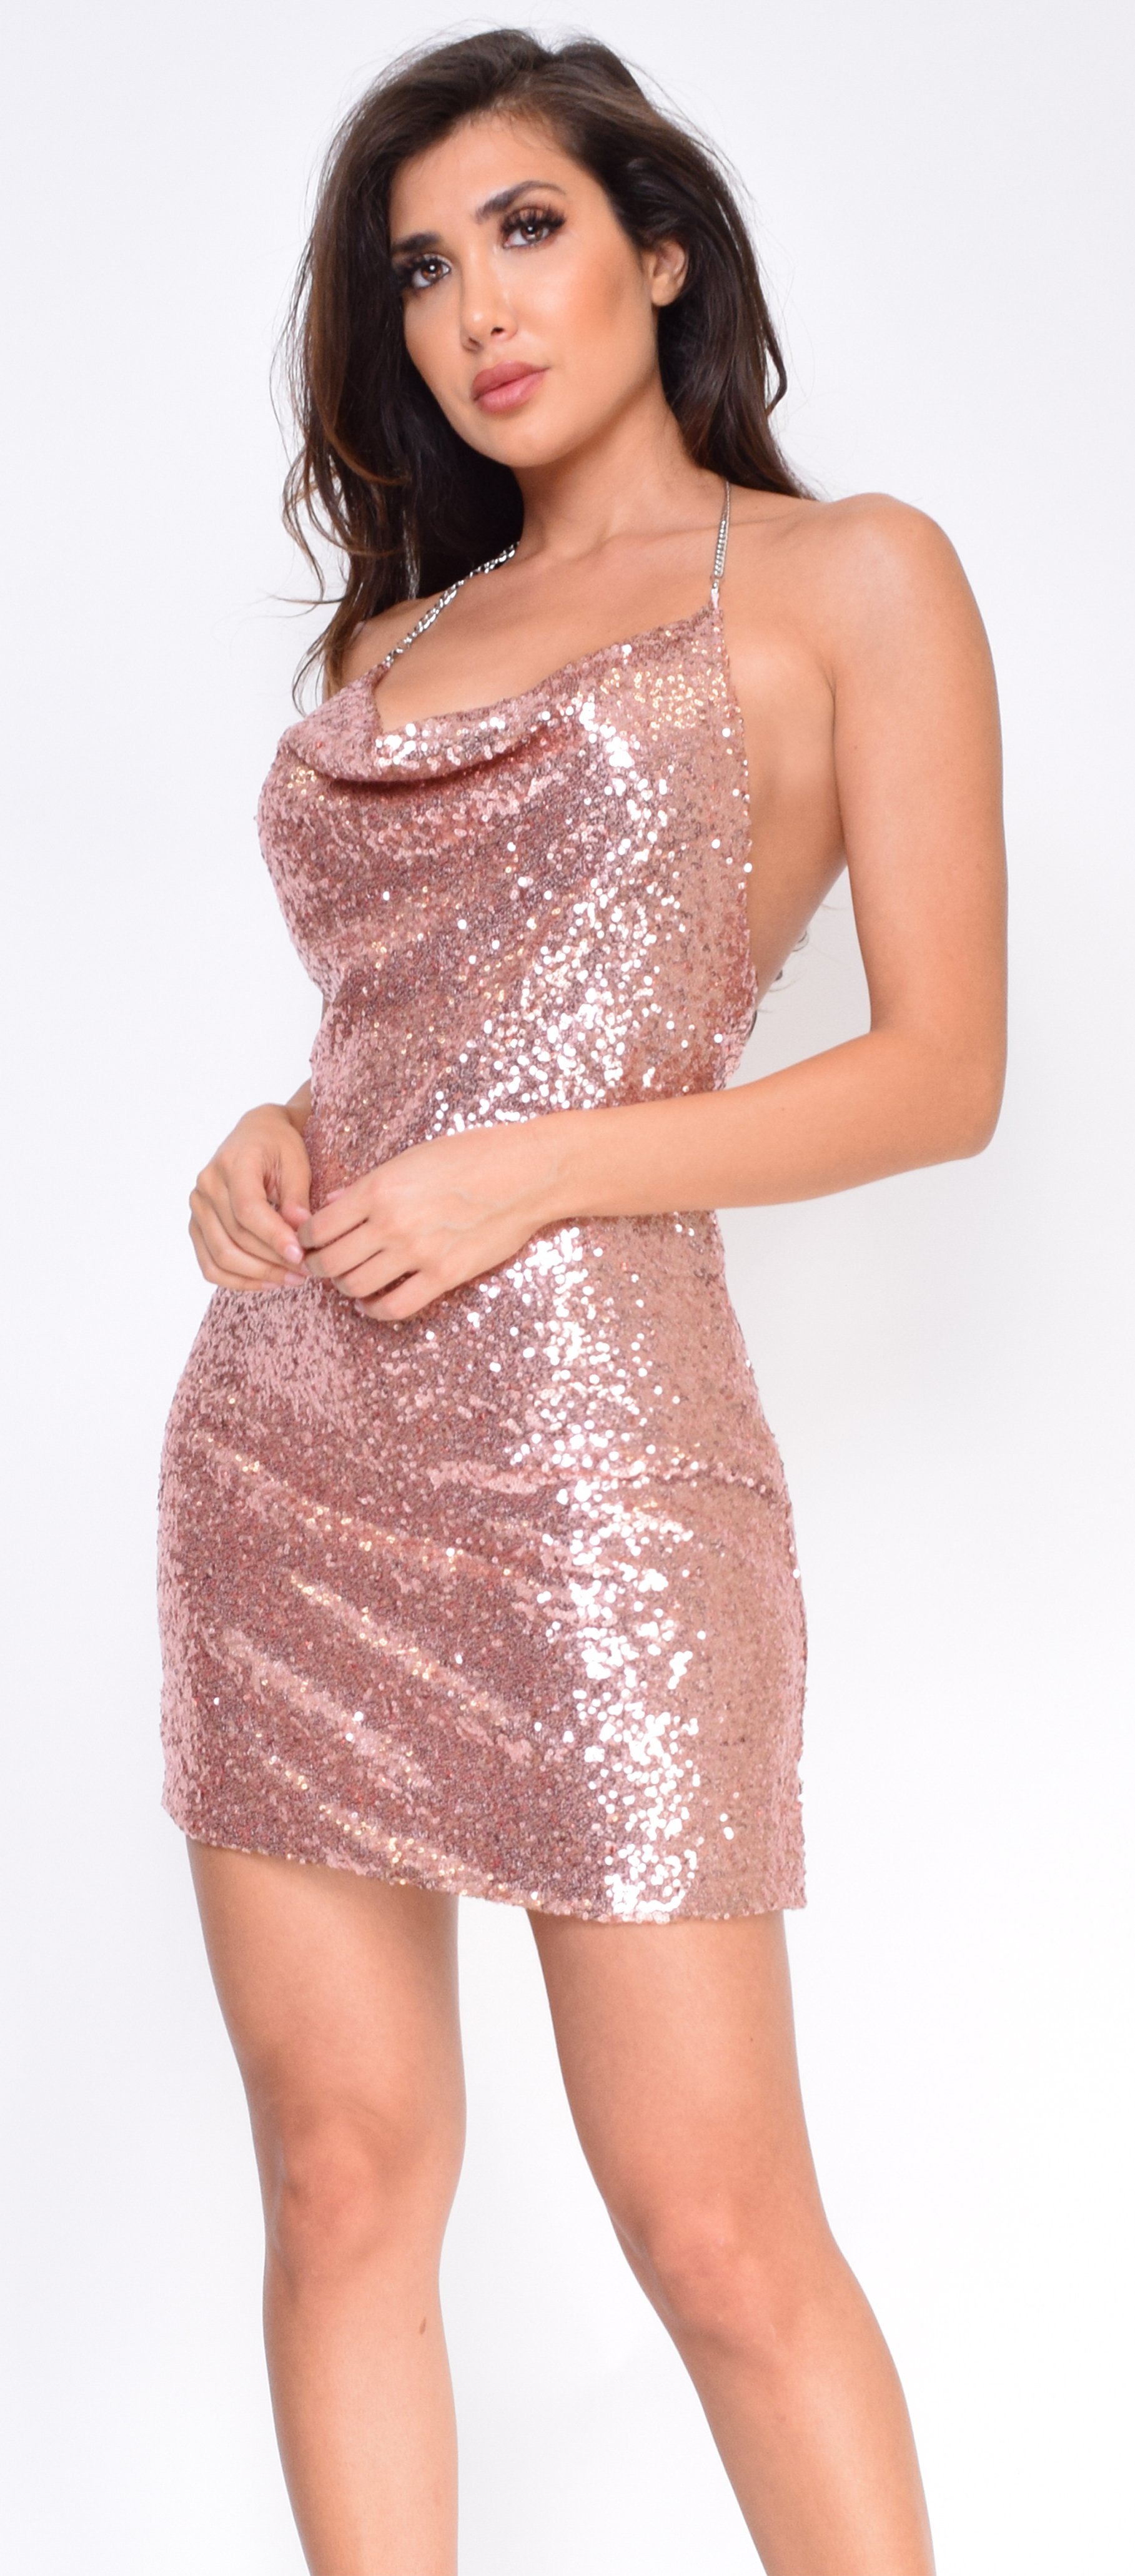 60f63ef22544 Image of Aliyona Rose Gold Drape Chain Sequin Dress